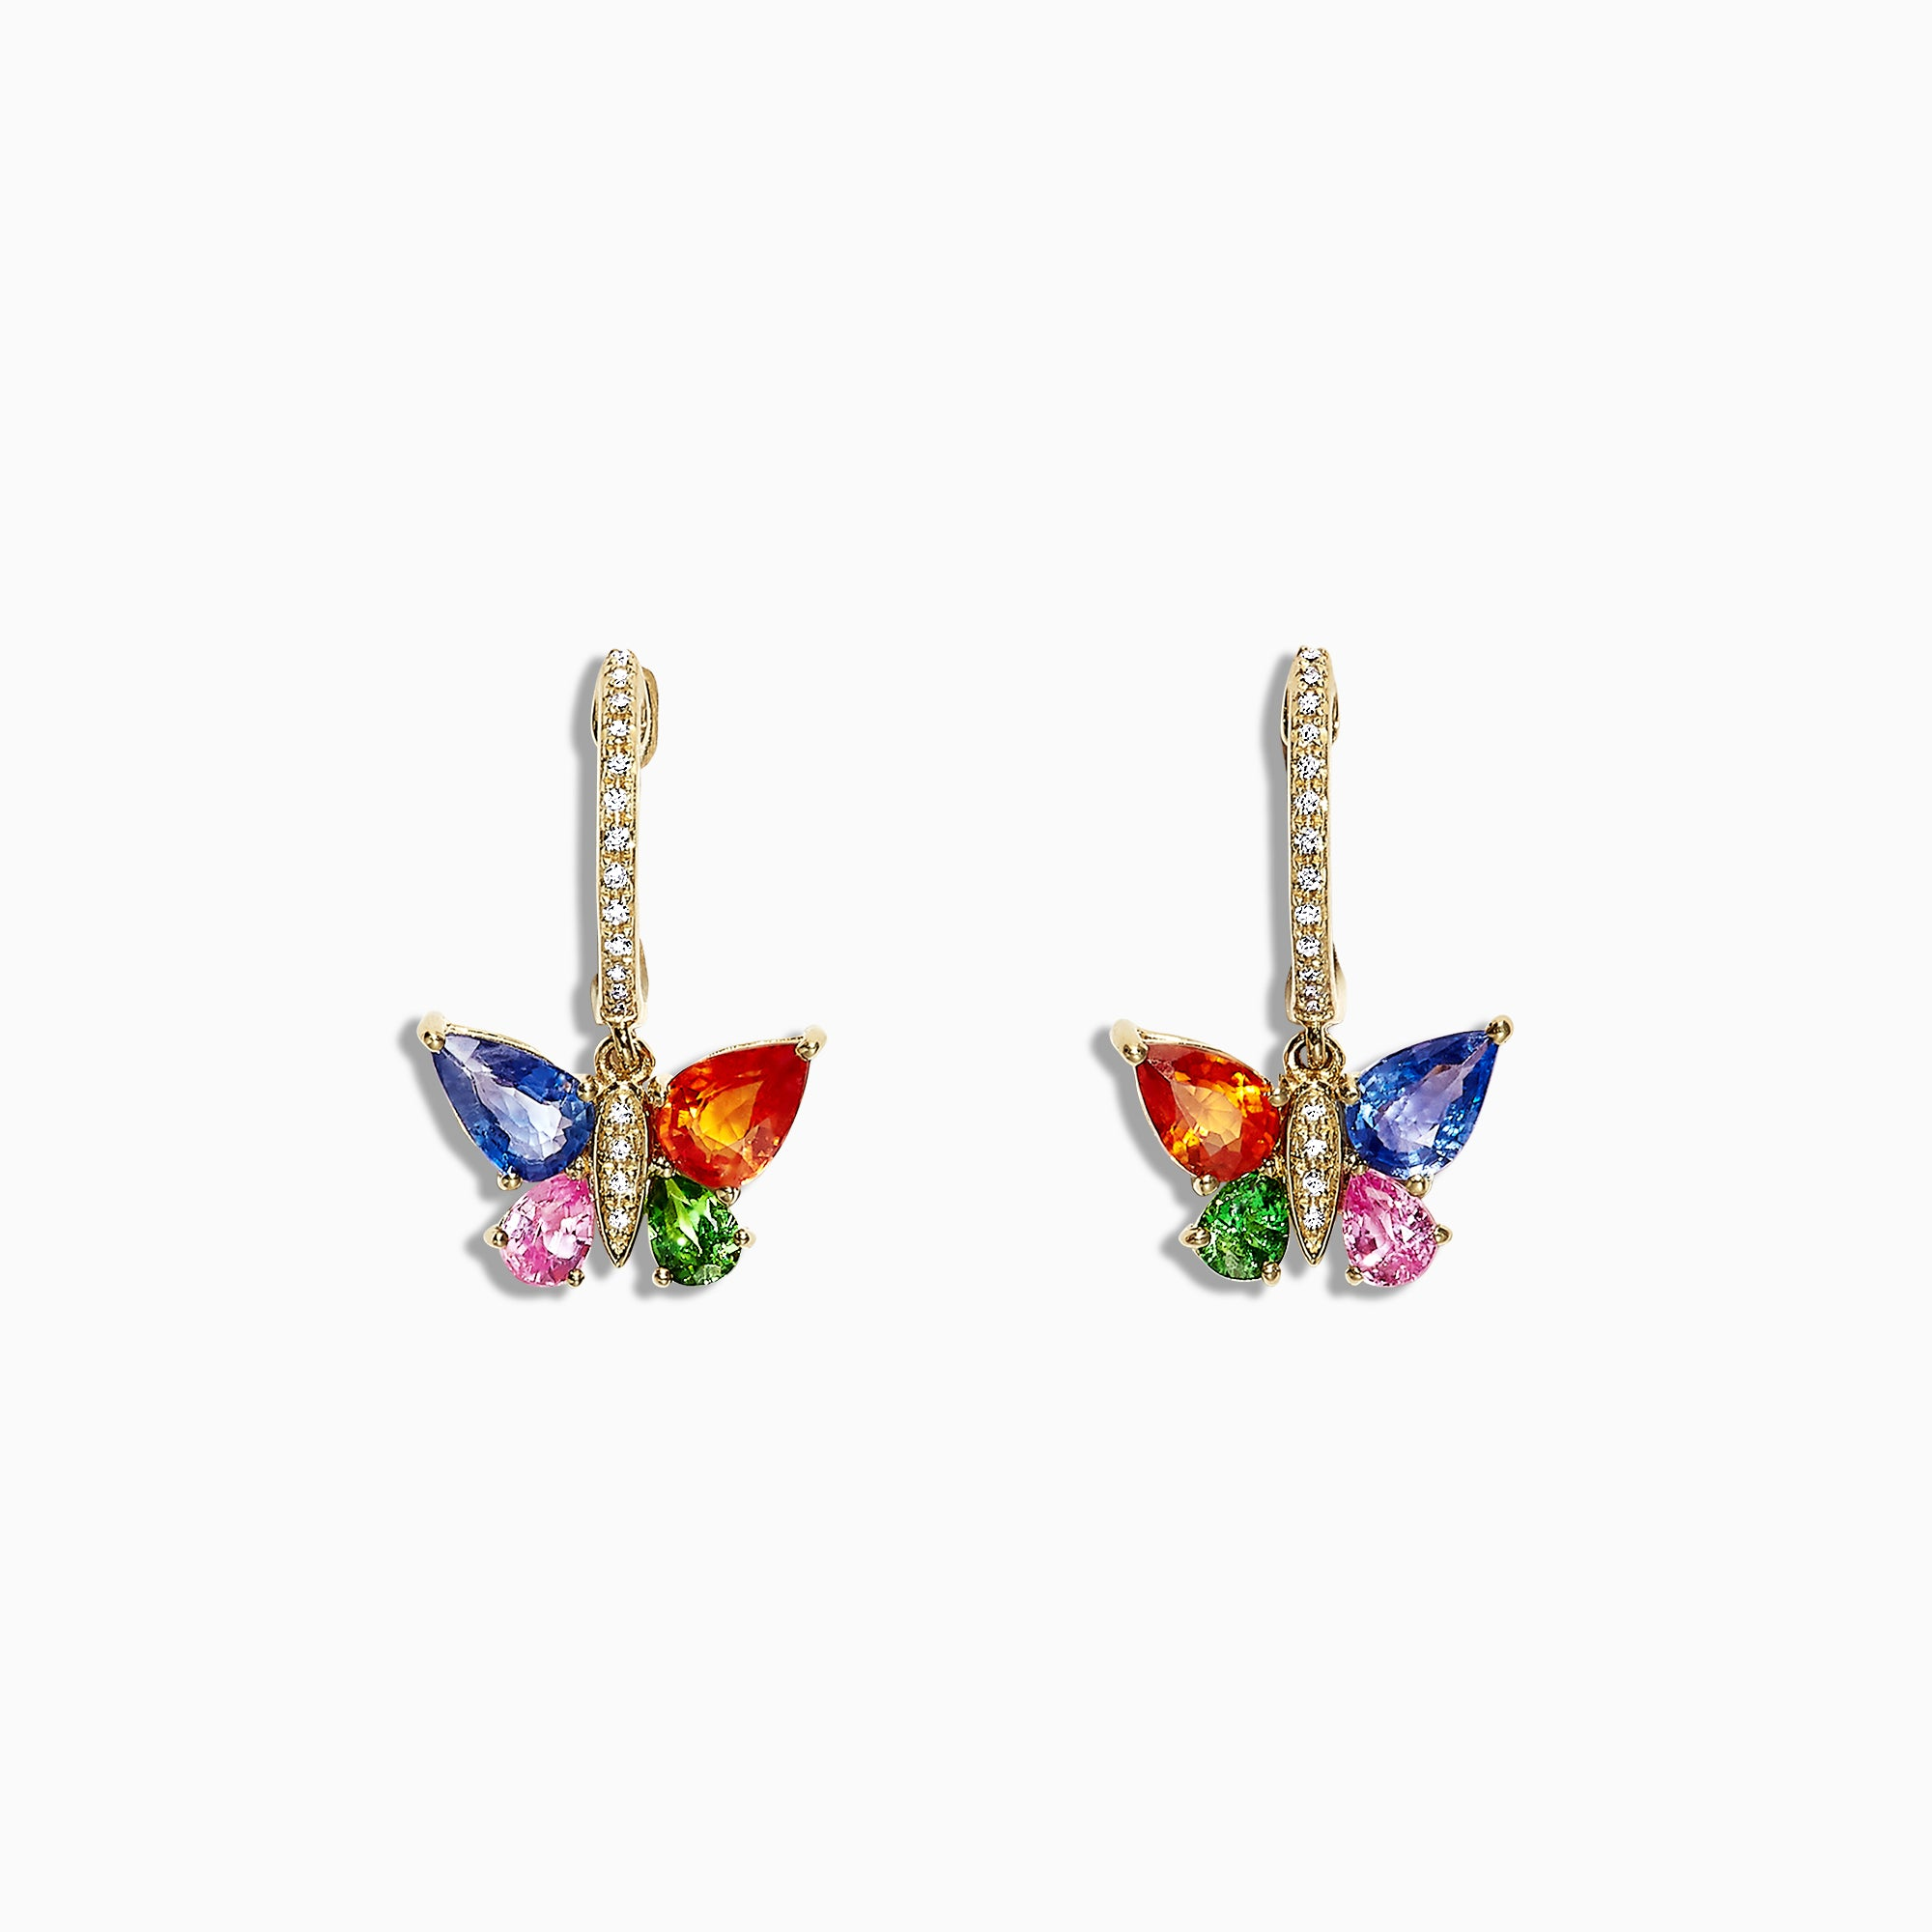 Effy Watercolors 14K Gold Sapphire & Diamond Butterfly Earrings, 2.97 TCW